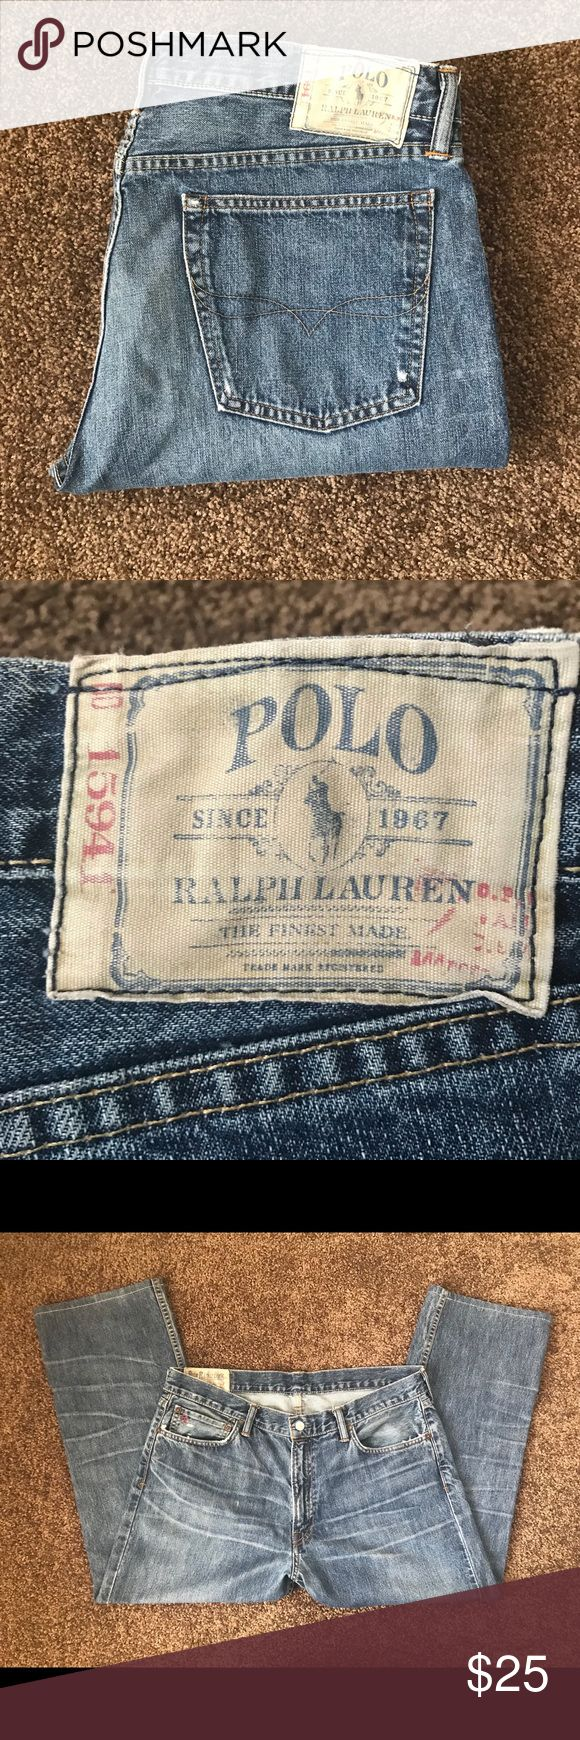 Sale! 🔥Polo Ralph Lauren, Straight Leg, 34X26 1/2 Yep, these are a size 34 waist and the length is 26 1/2. They are 100% cotton. Someone didn't follow the instructions and washed these in warm water and dried them in the dryer! I won't mention any names! He knows who he is! 🤪 Anyway, These were worn maybe once or twice! These are the dark blue wash. Five pockets with button closure. Polo label at the coin pockets. Polo by Ralph Lauren Jeans Straight